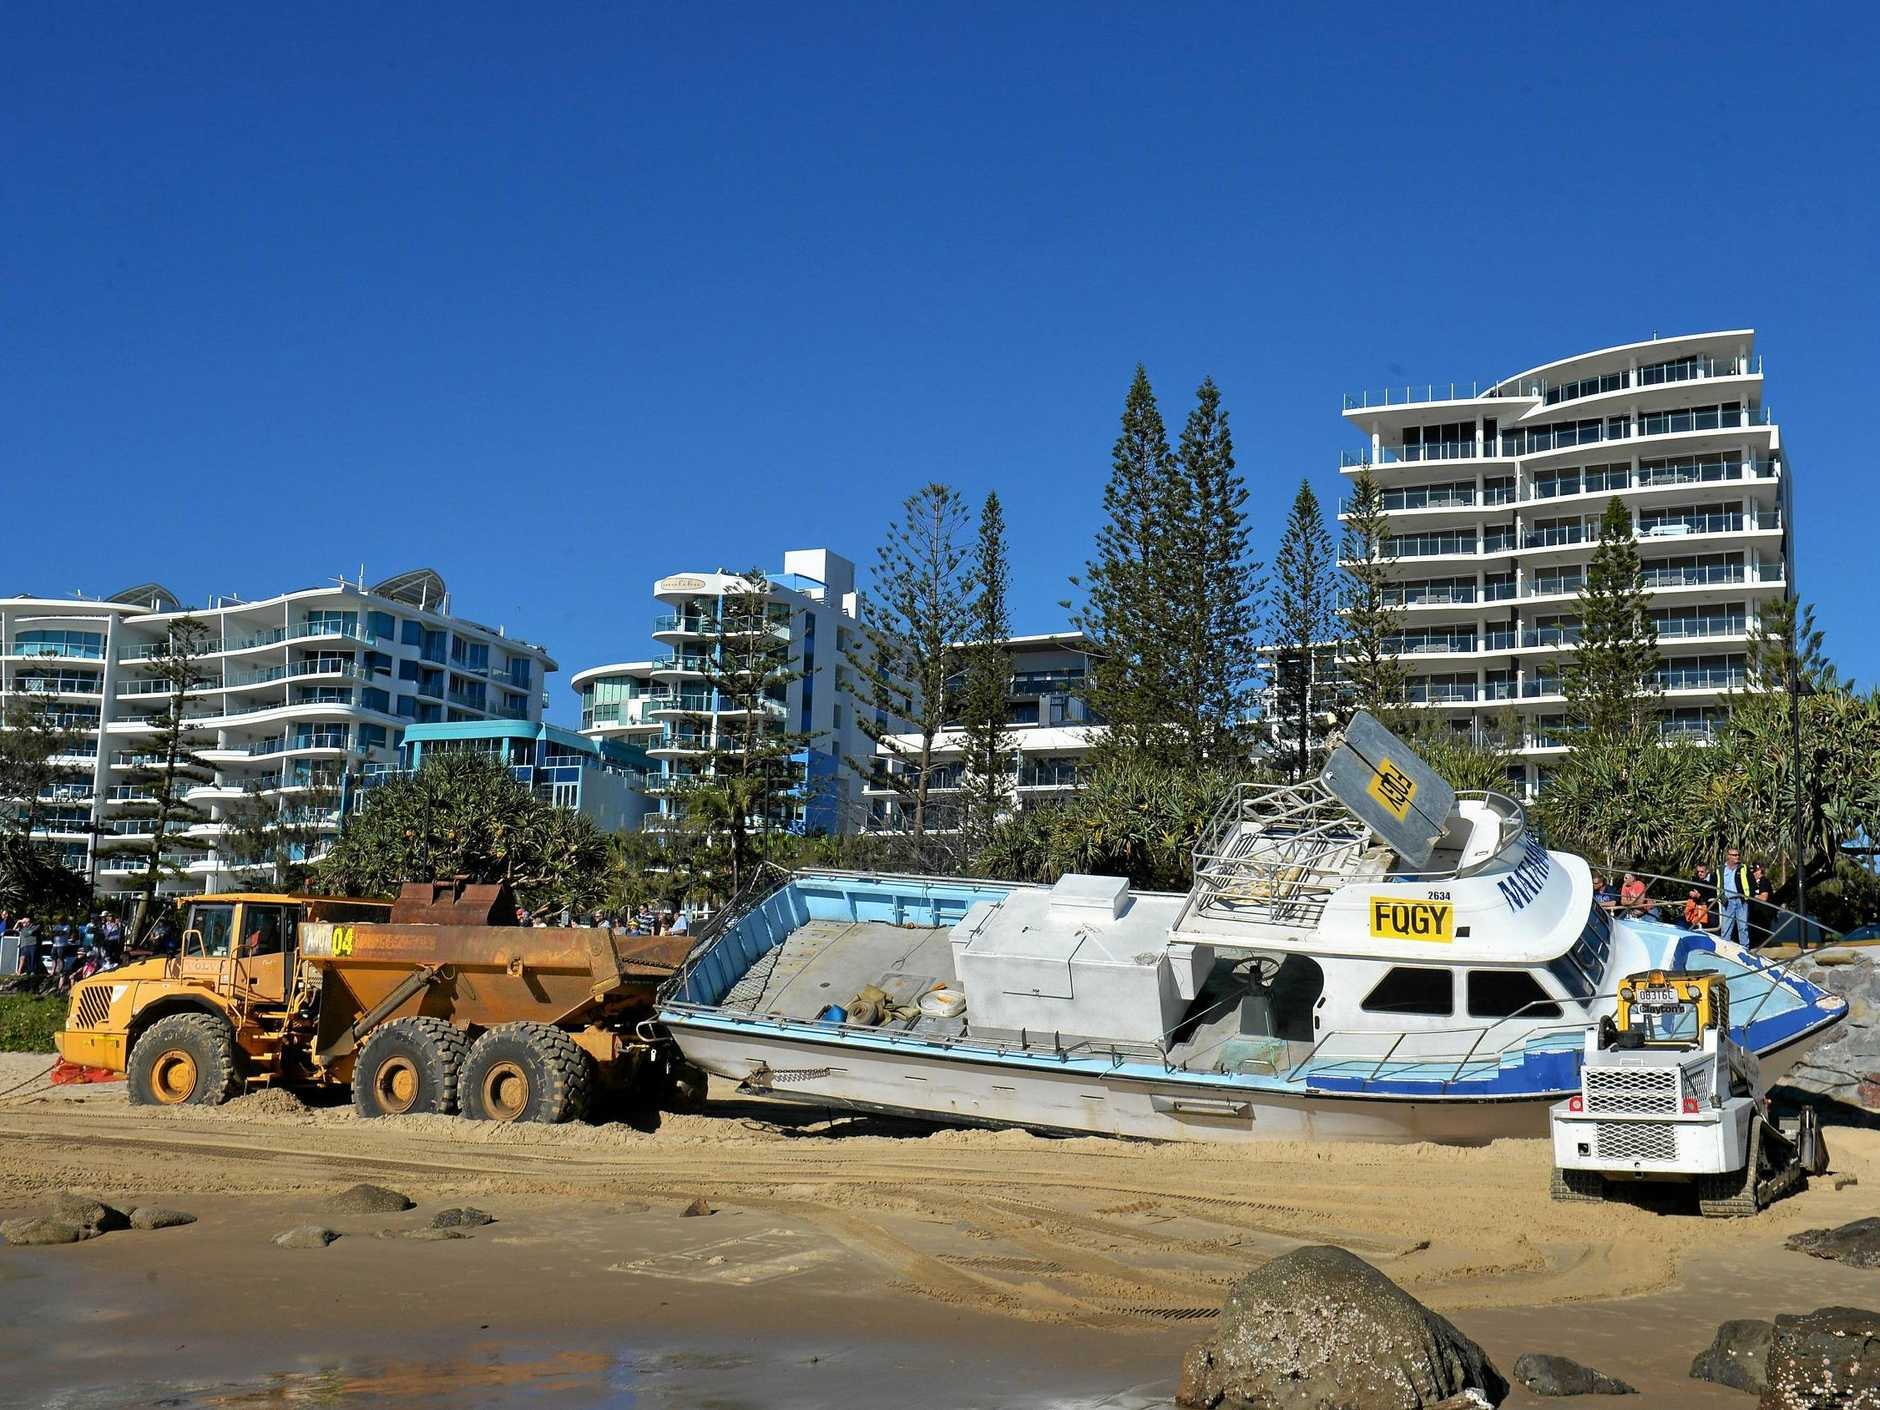 The Matahari being towed along Mooloolaba Beach.